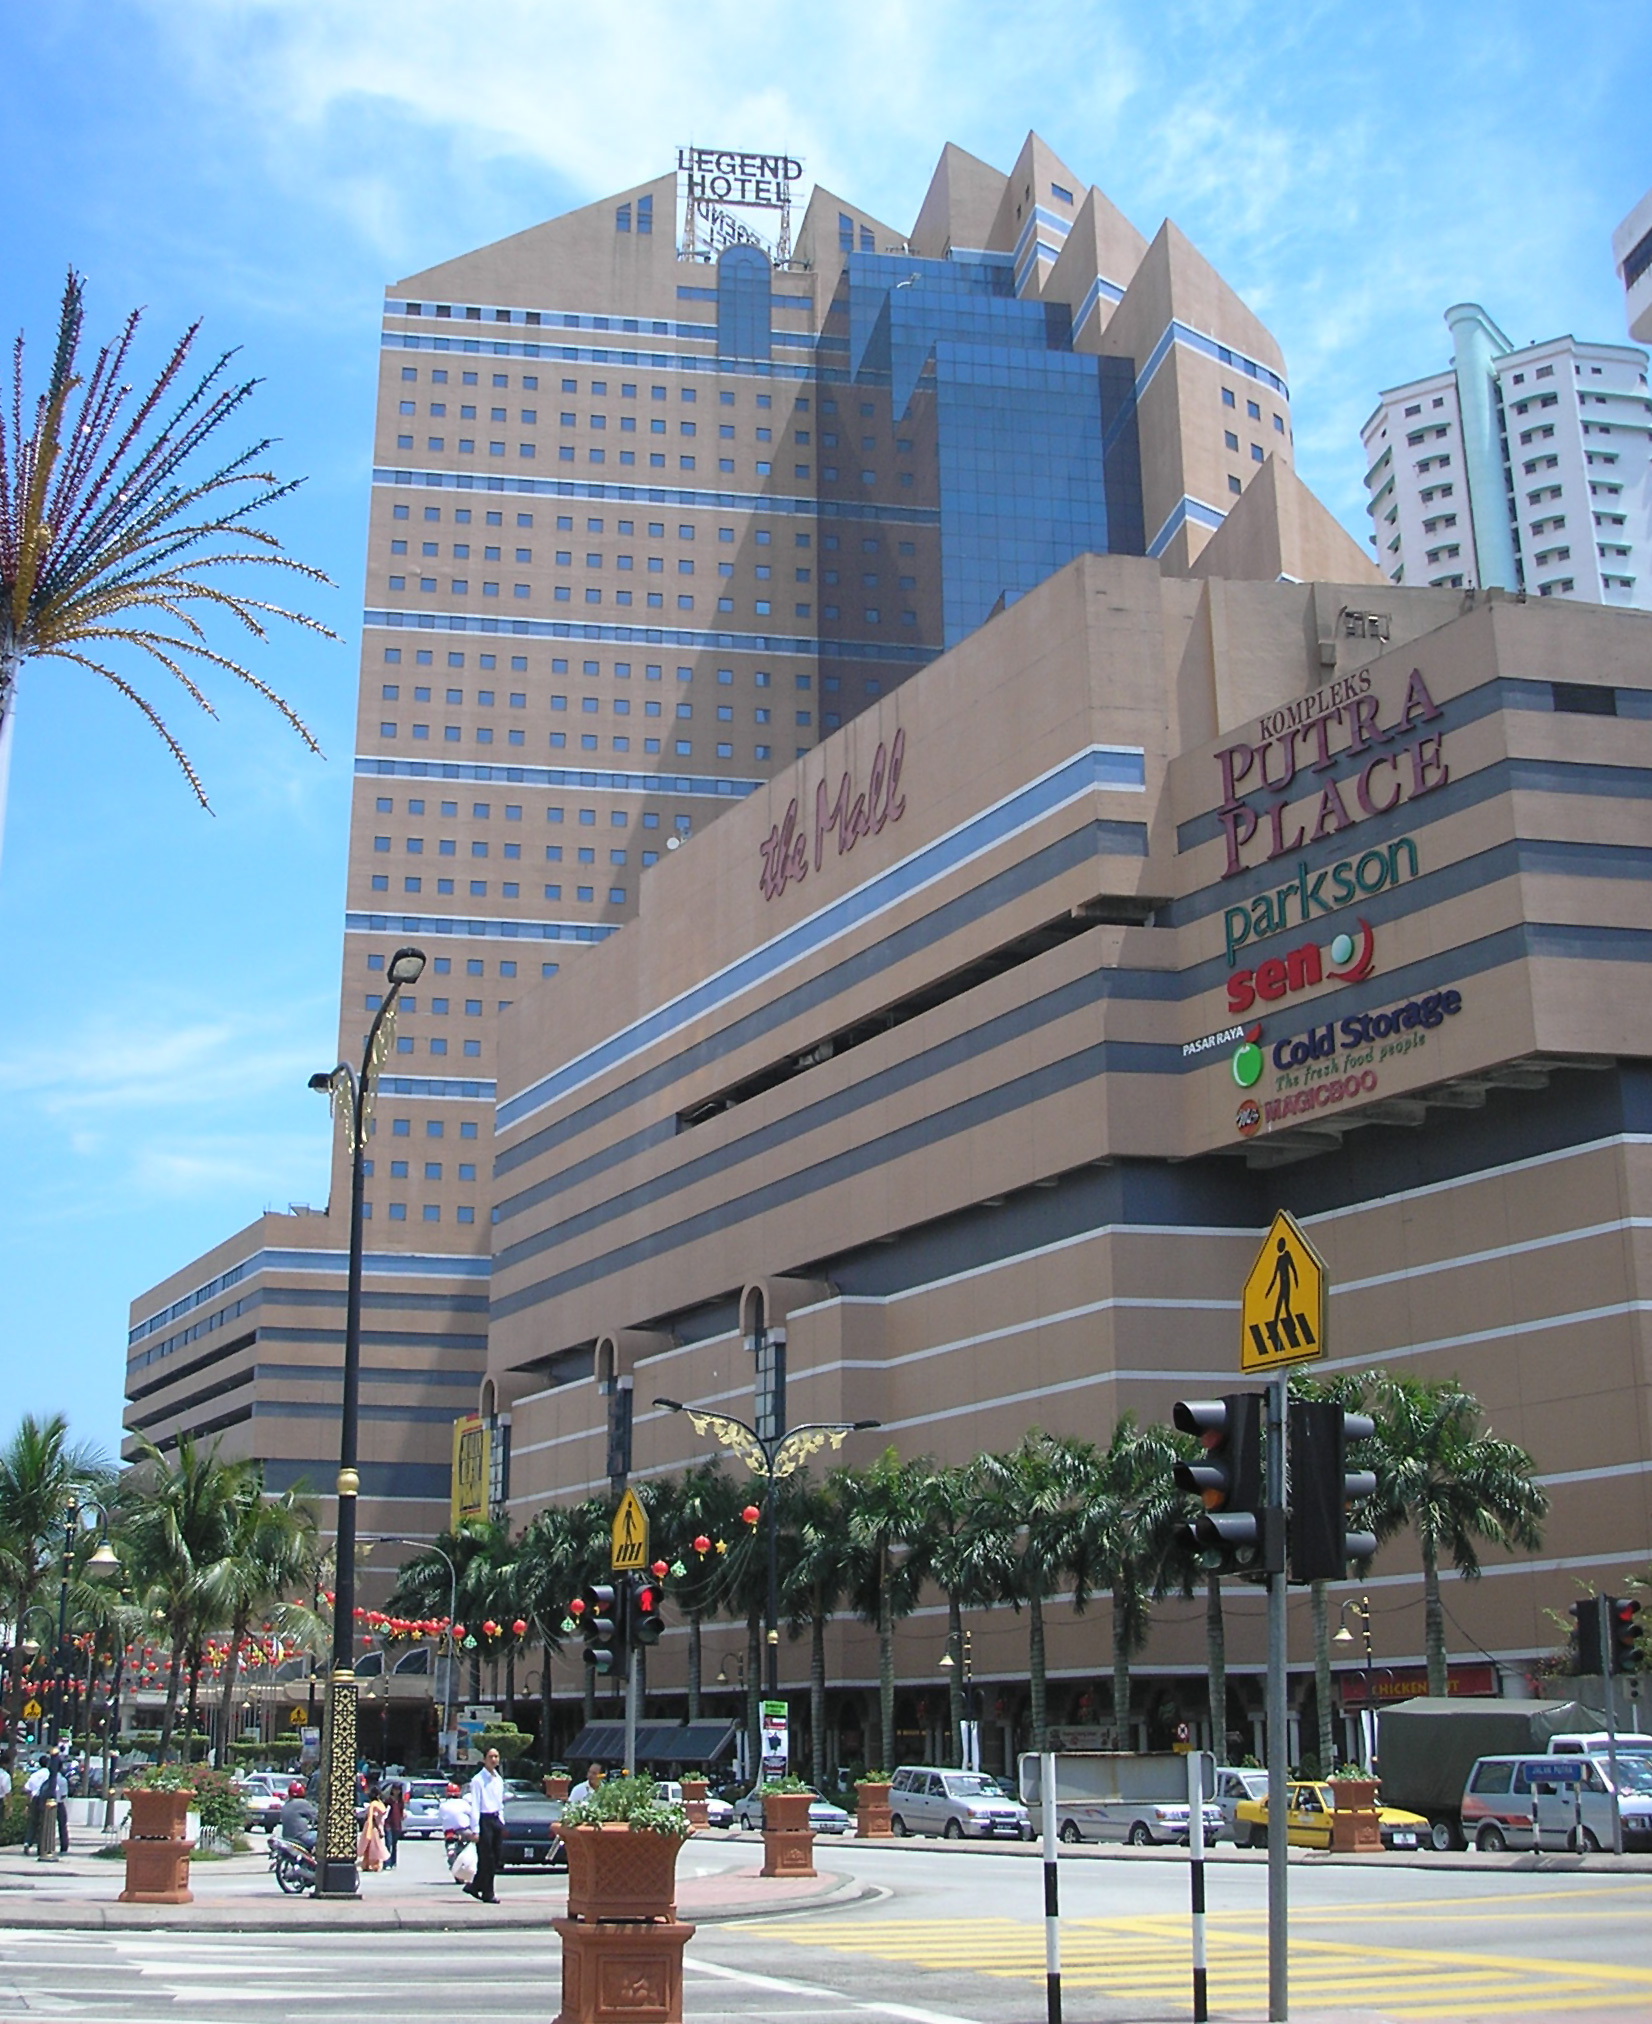 http://upload.wikimedia.org/wikipedia/commons/e/ea/The_Mall_and_Legend_Hotel,_Kuala_Lumpur.jpg